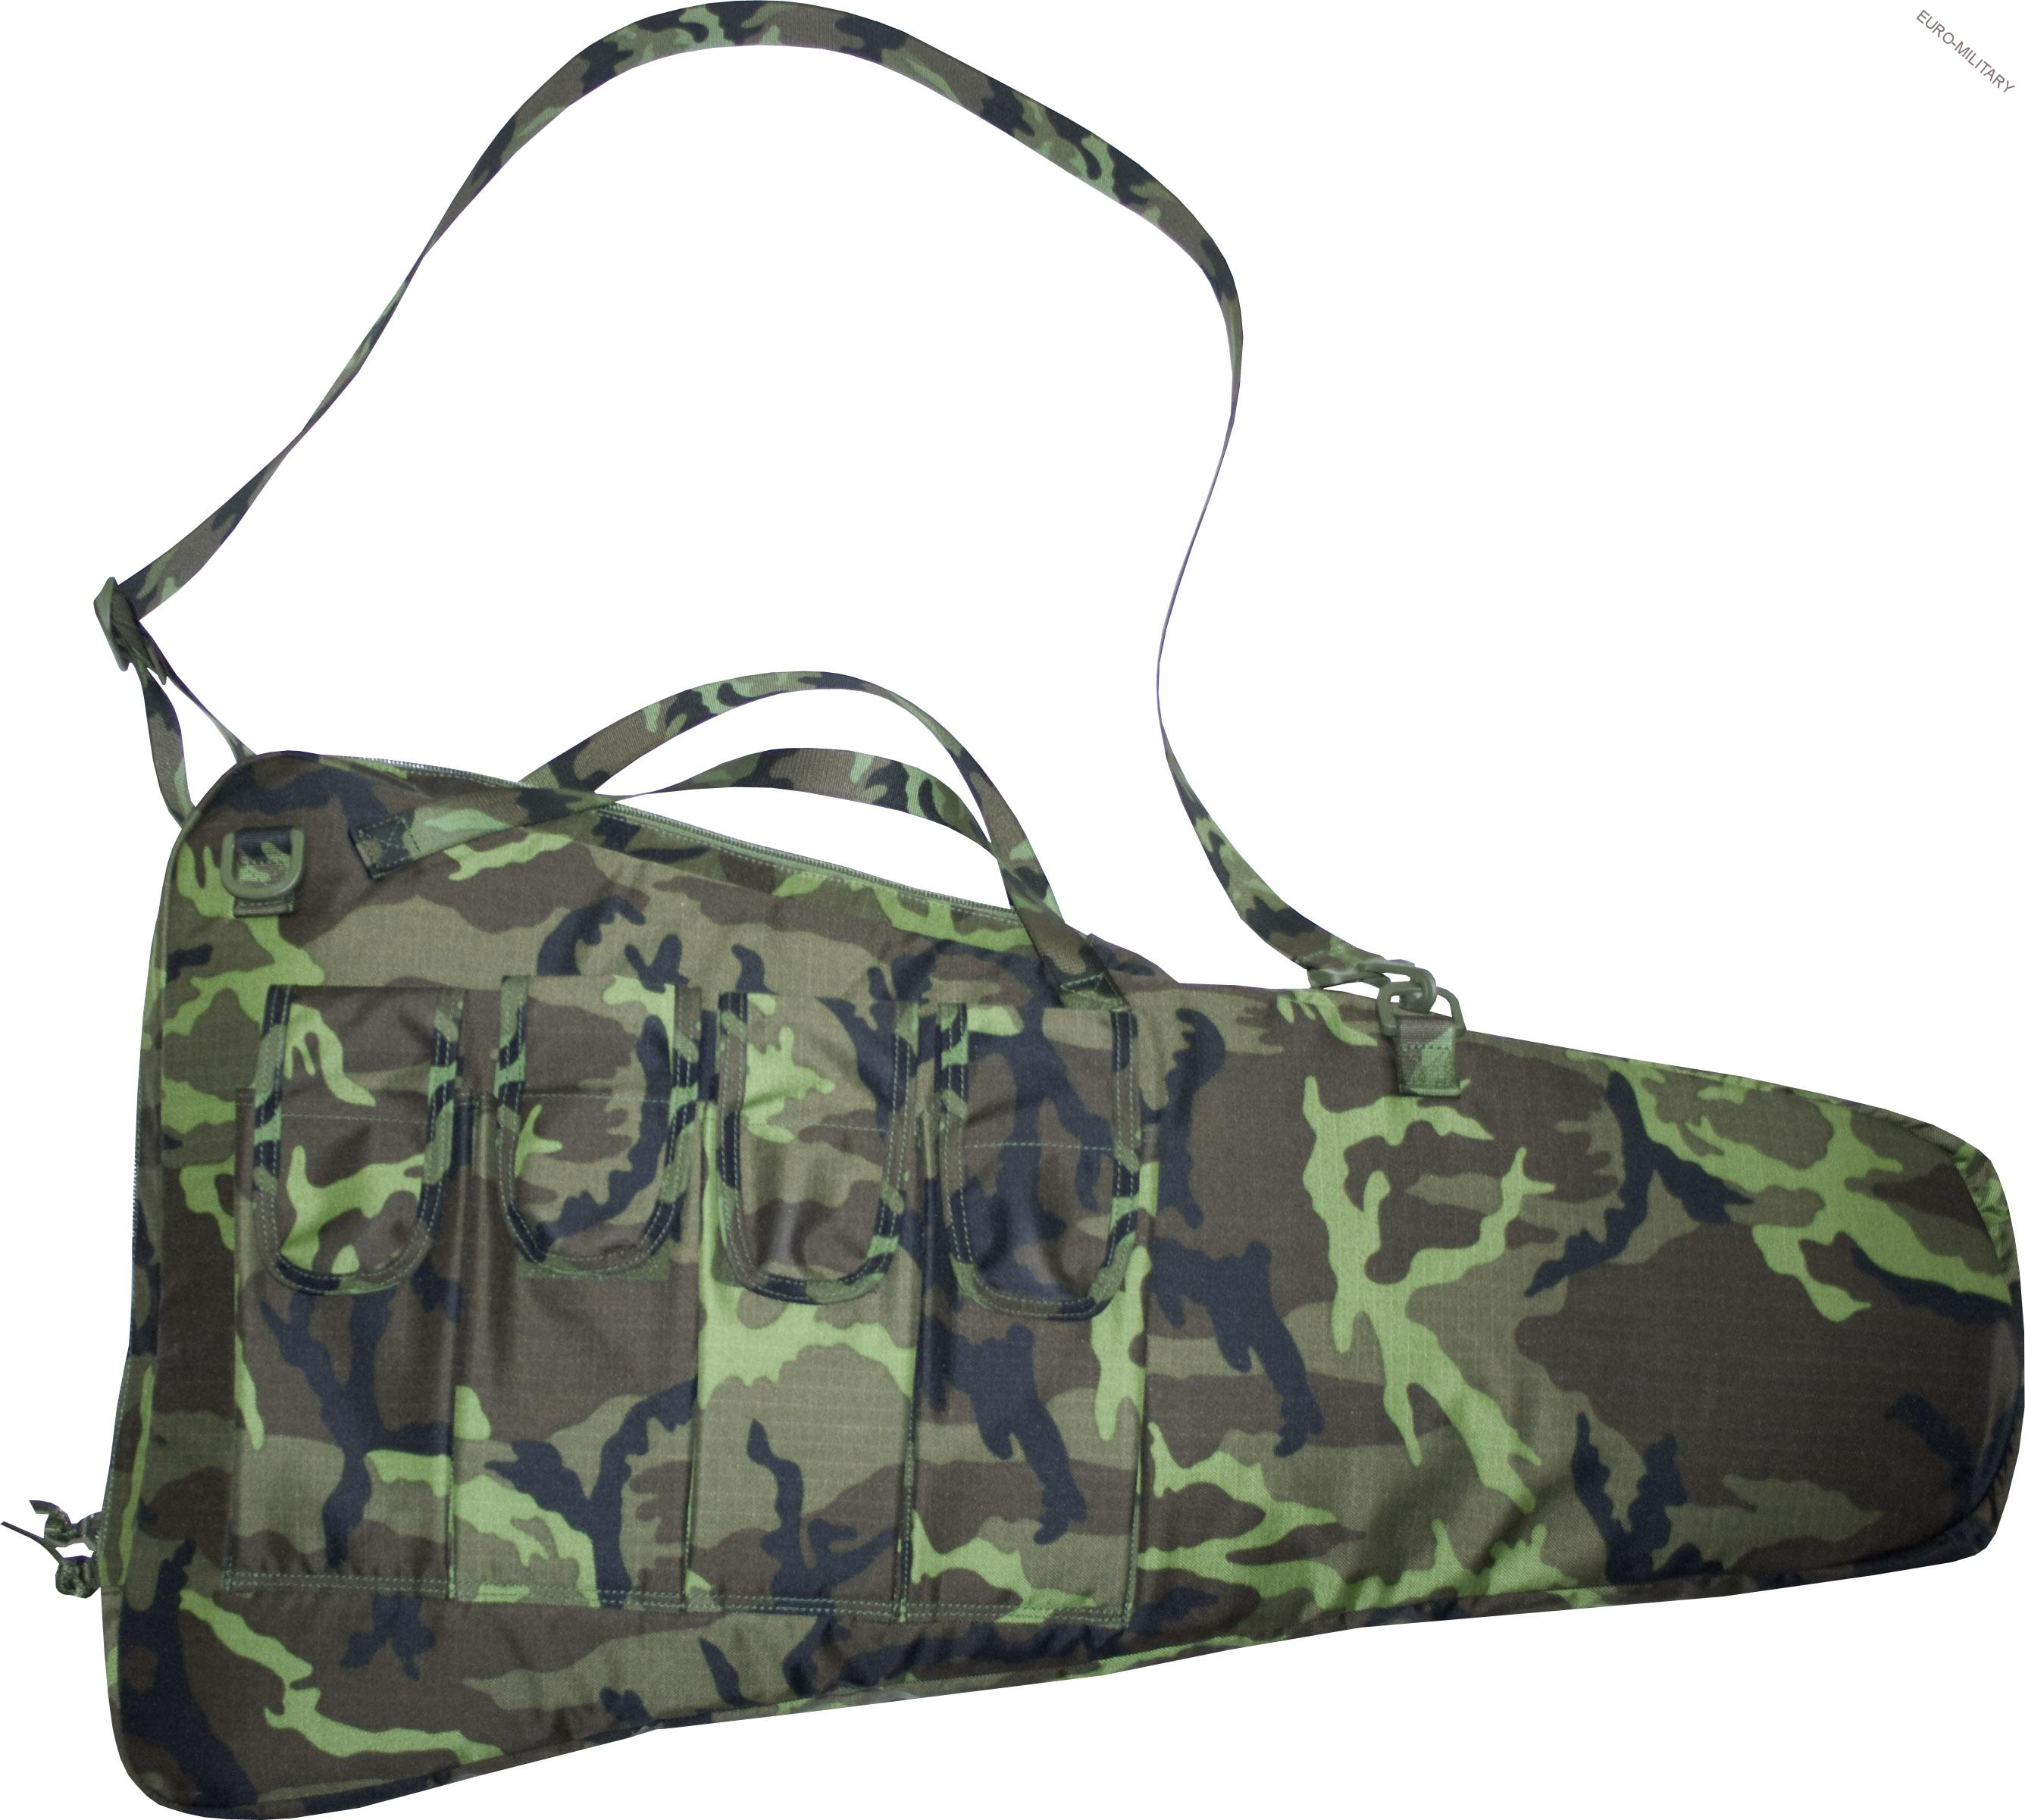 CZ Bren 805 Czech Army M95 Camo Tactical Transport Bag